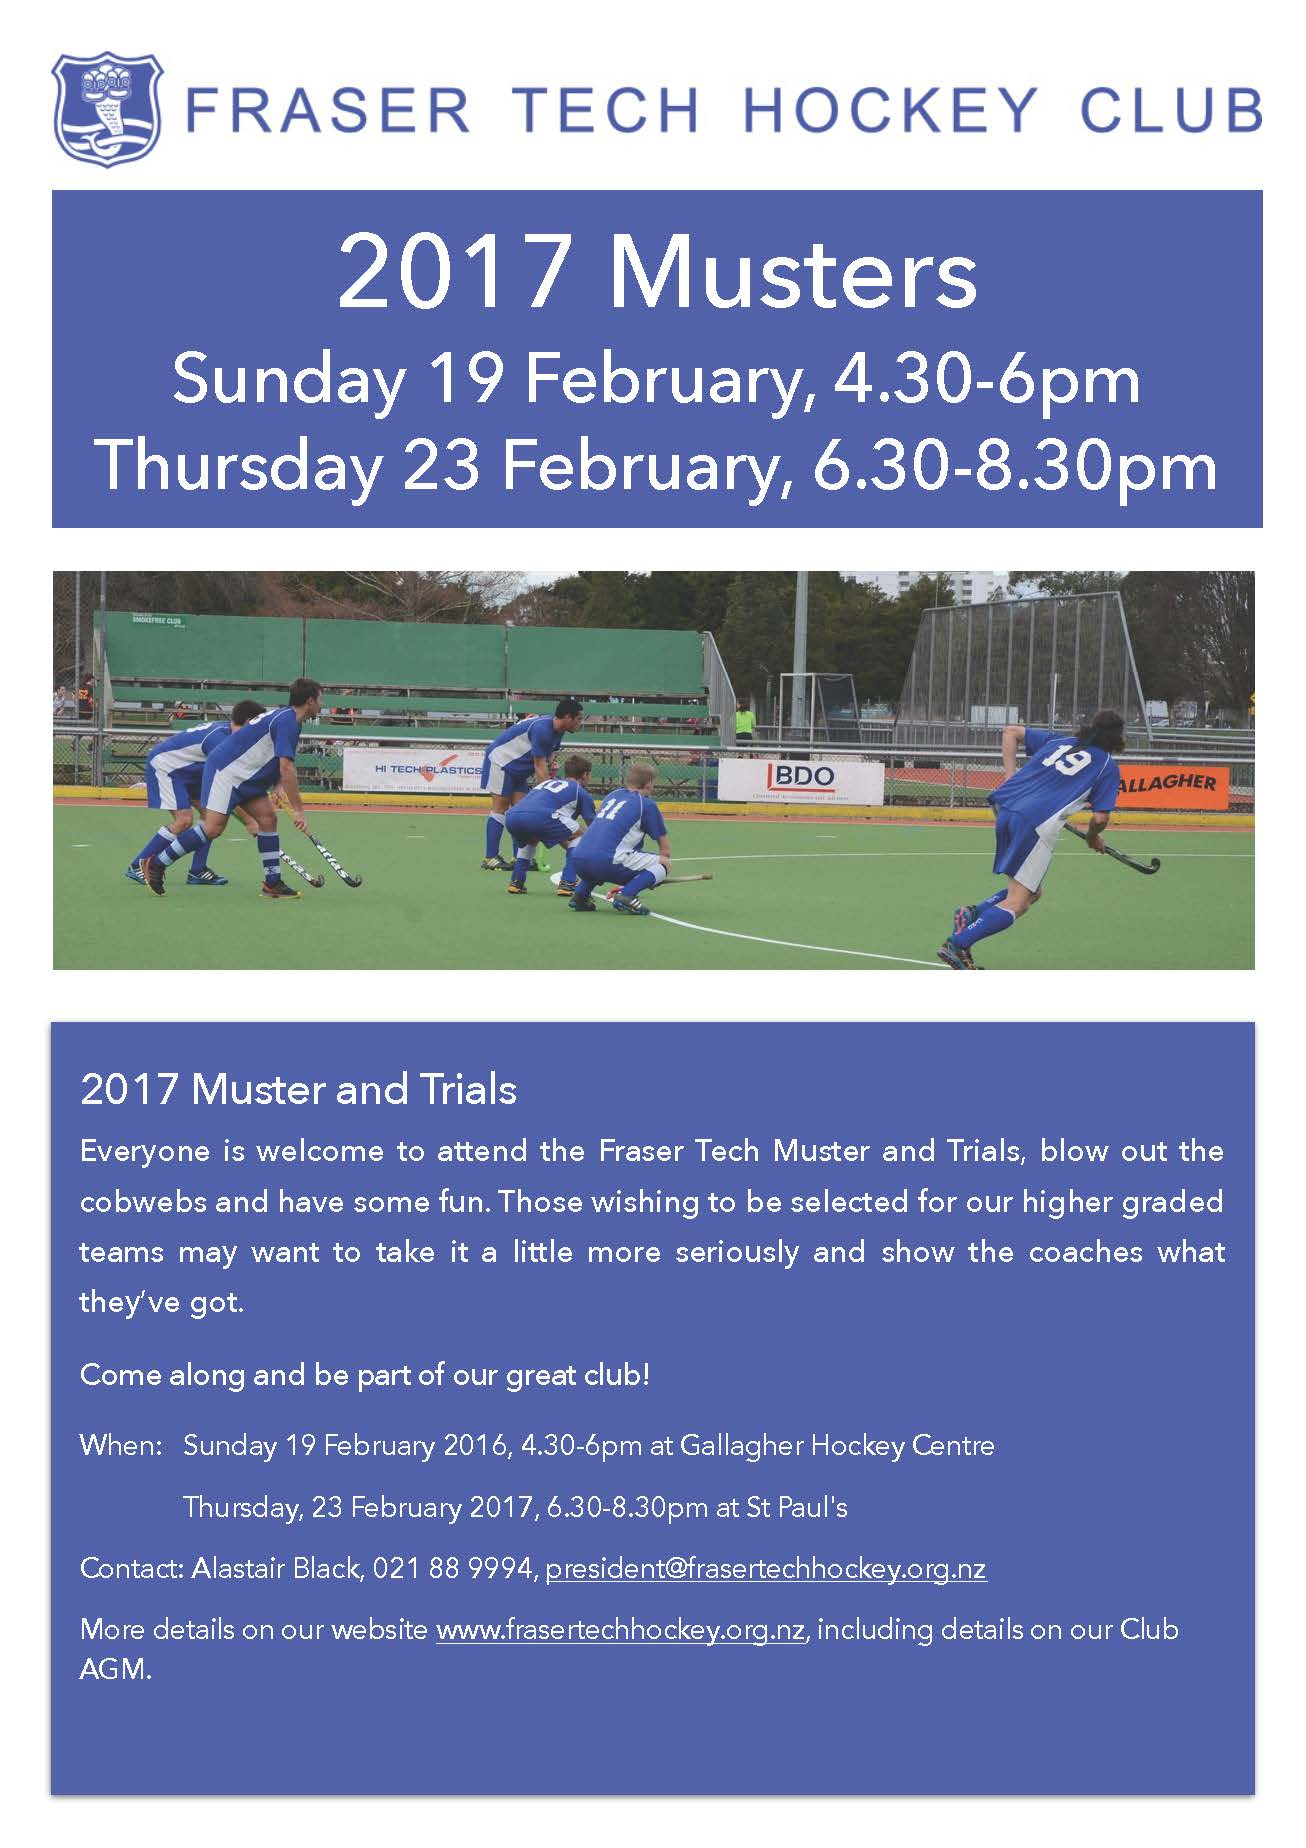 2017 Musters and Trials